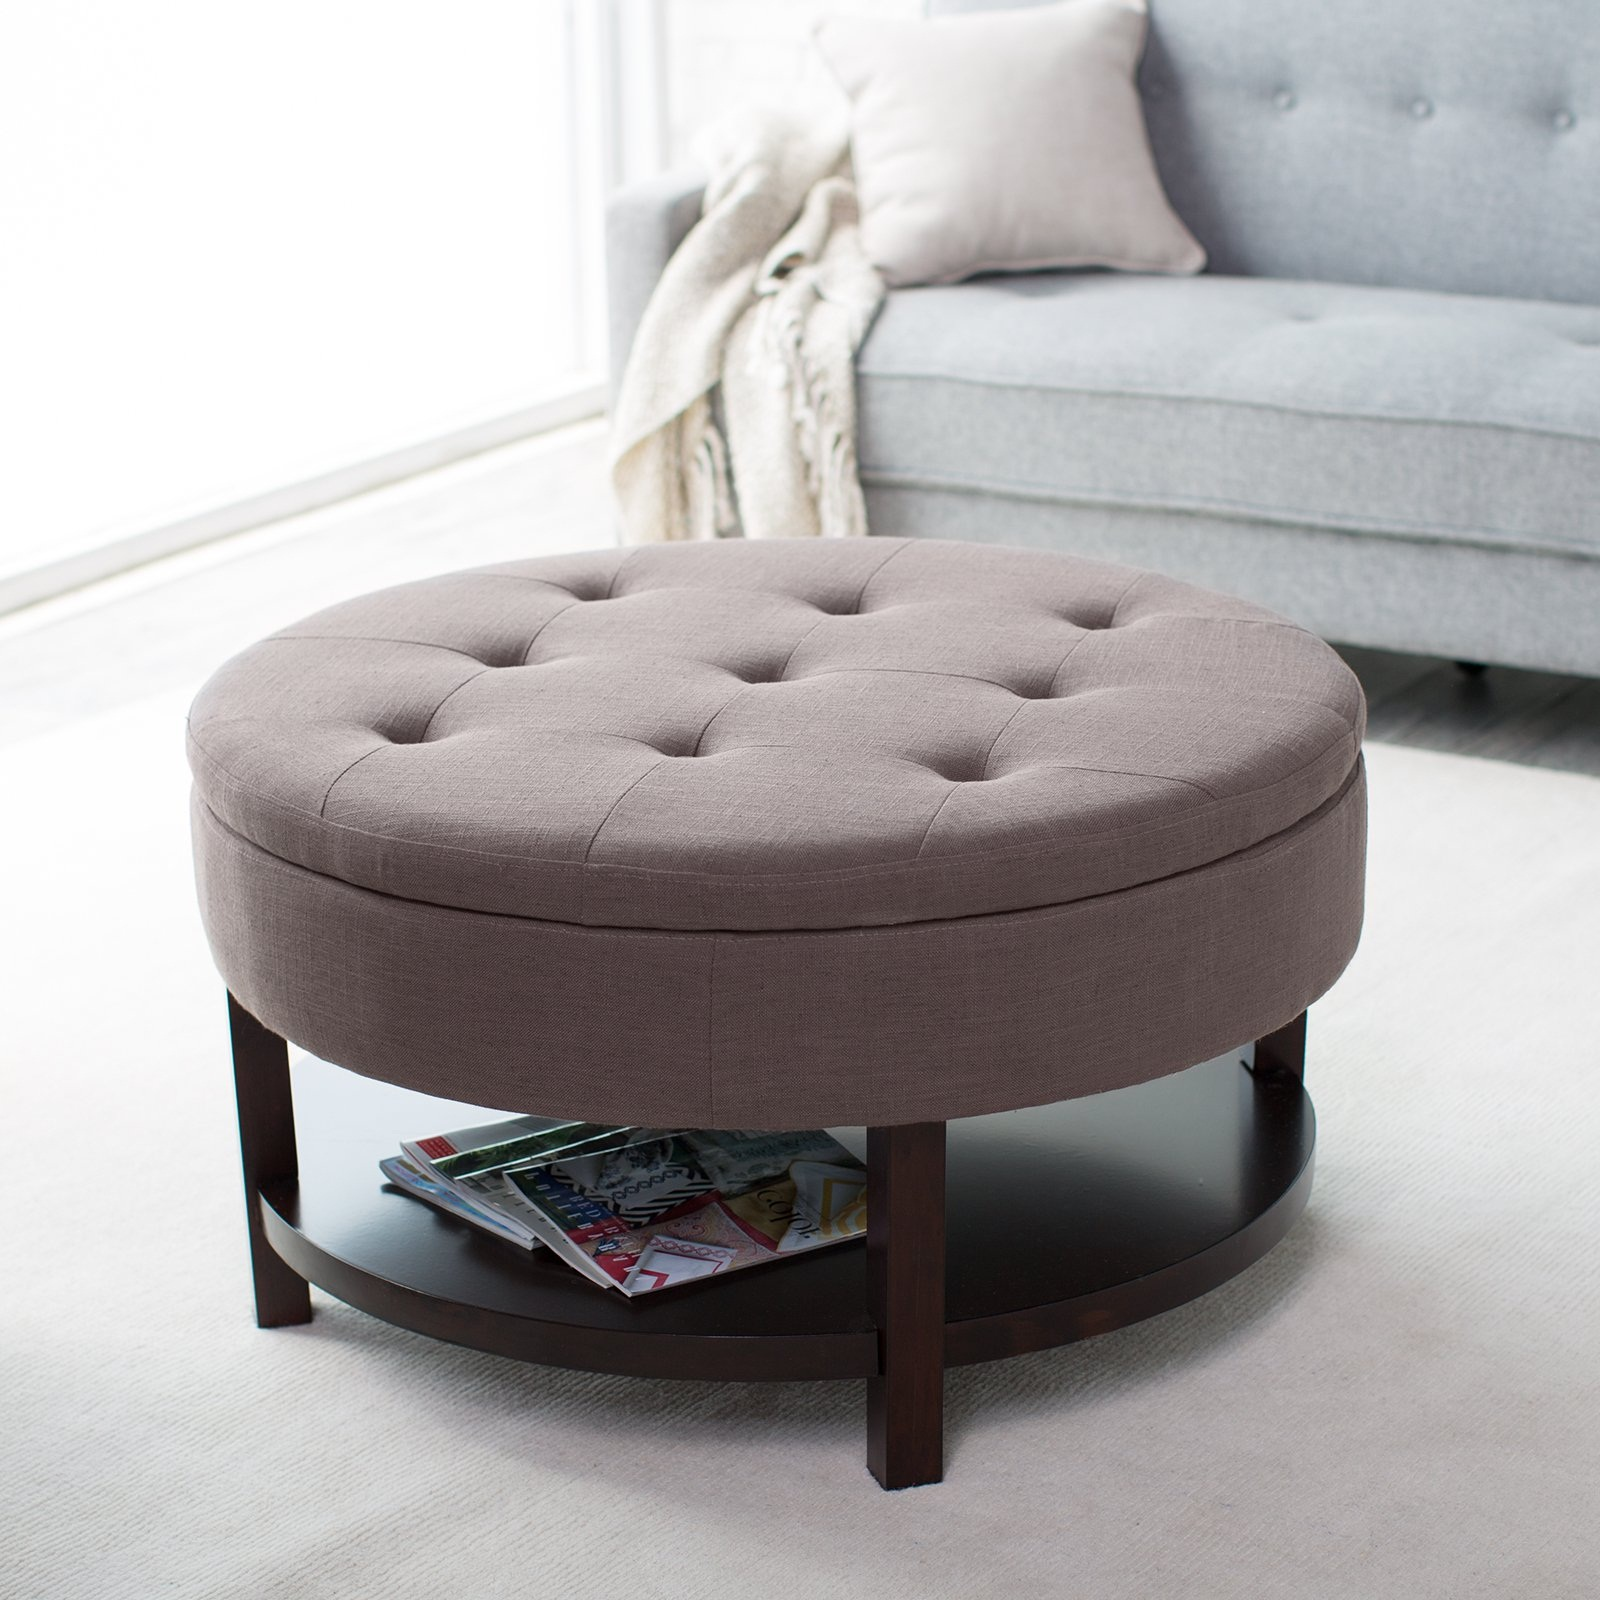 Round Coffee Table Ottoman | Large Ottoman Coffee Table | Upholstered Storage Ottoman Coffee Table